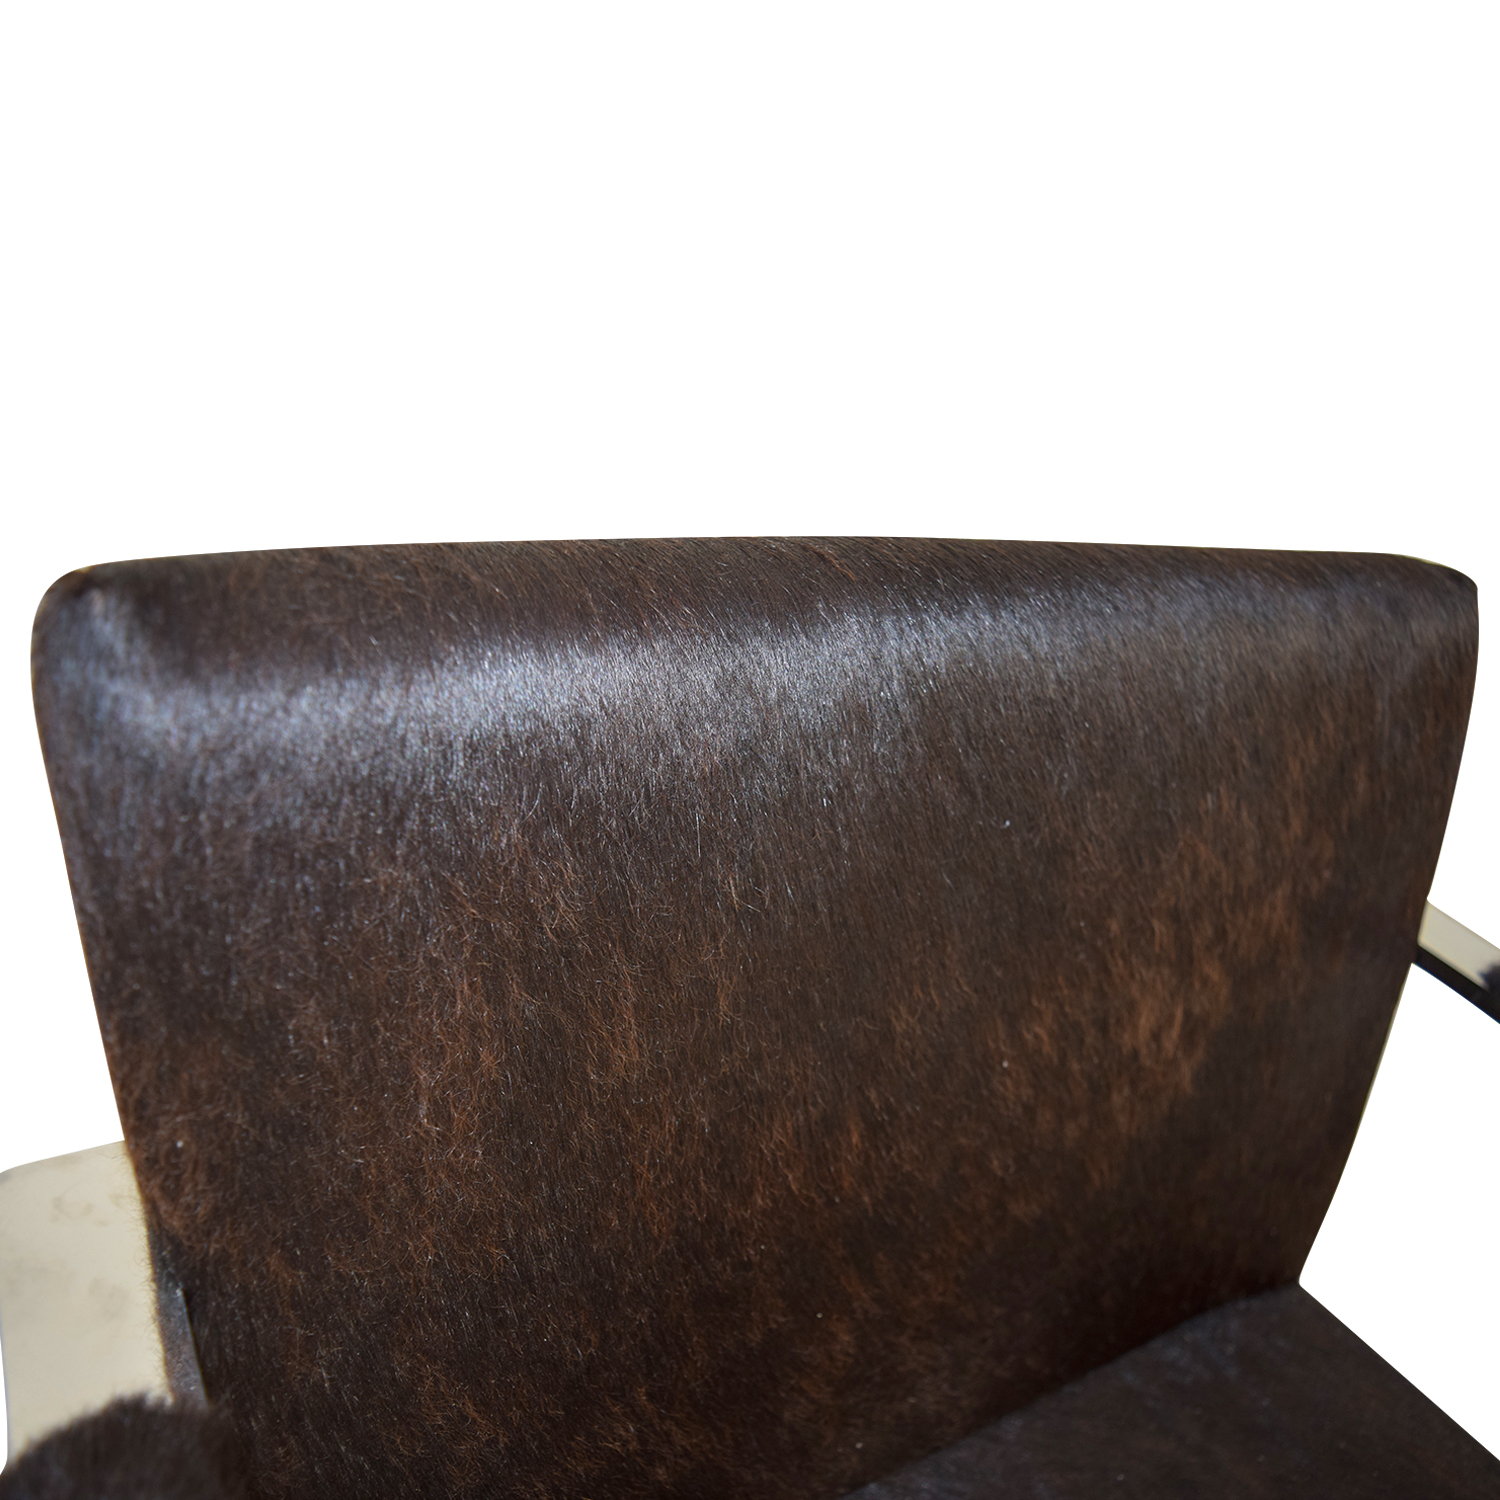 Soho Concept Furniture Soho Concept Furniture Black Pony Skin Accent Chair Brown/Sliver